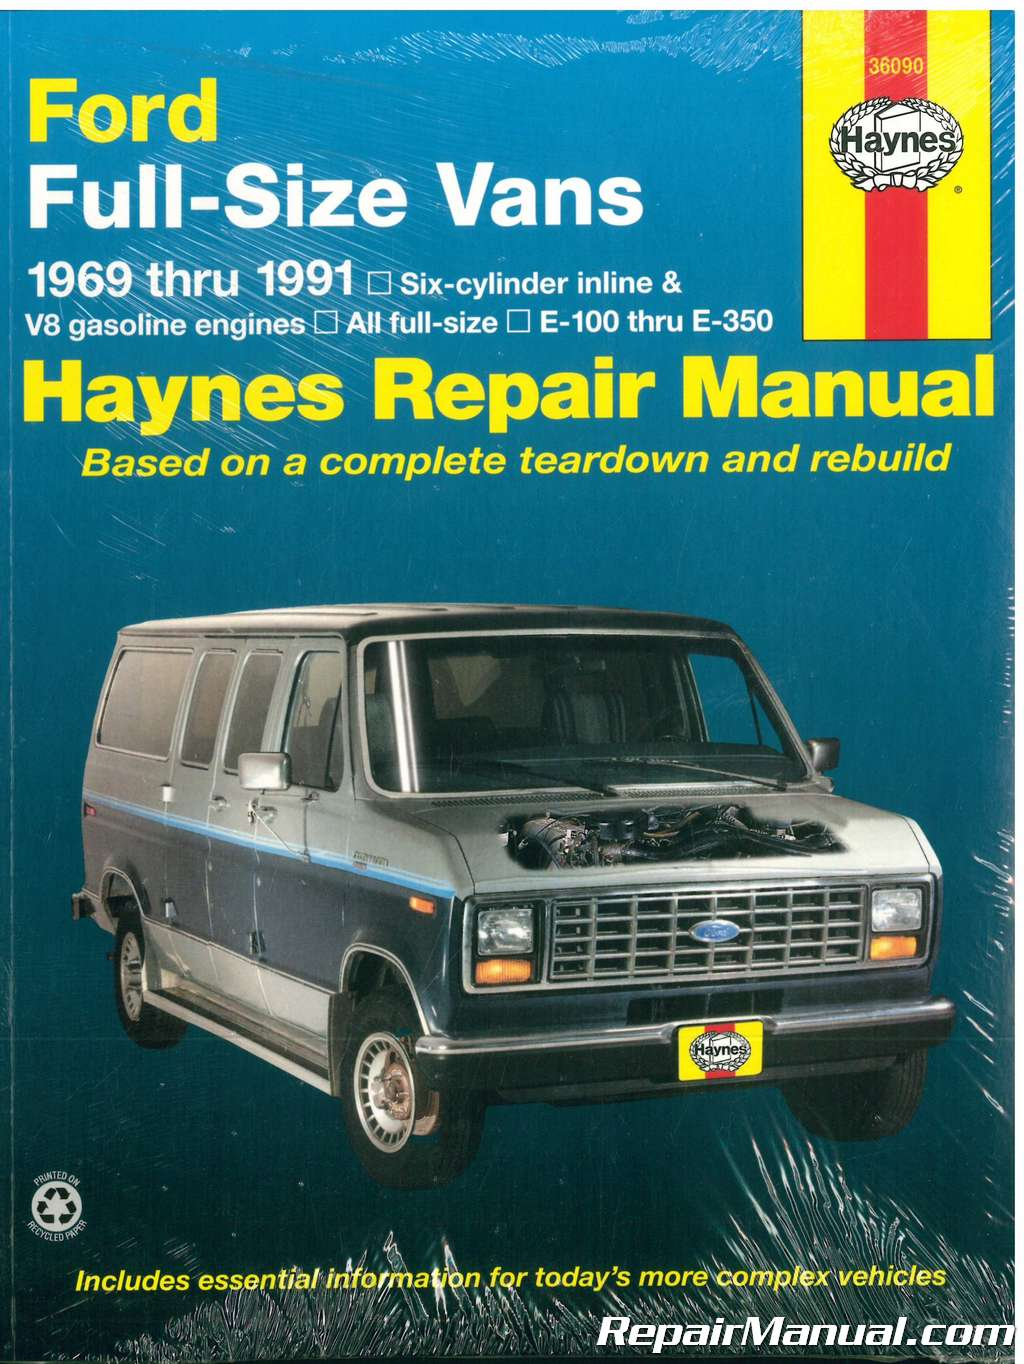 Honda Vin Decoder >> Haynes Ford Full Sized Van 1969- 1991 Auto Repair Manual